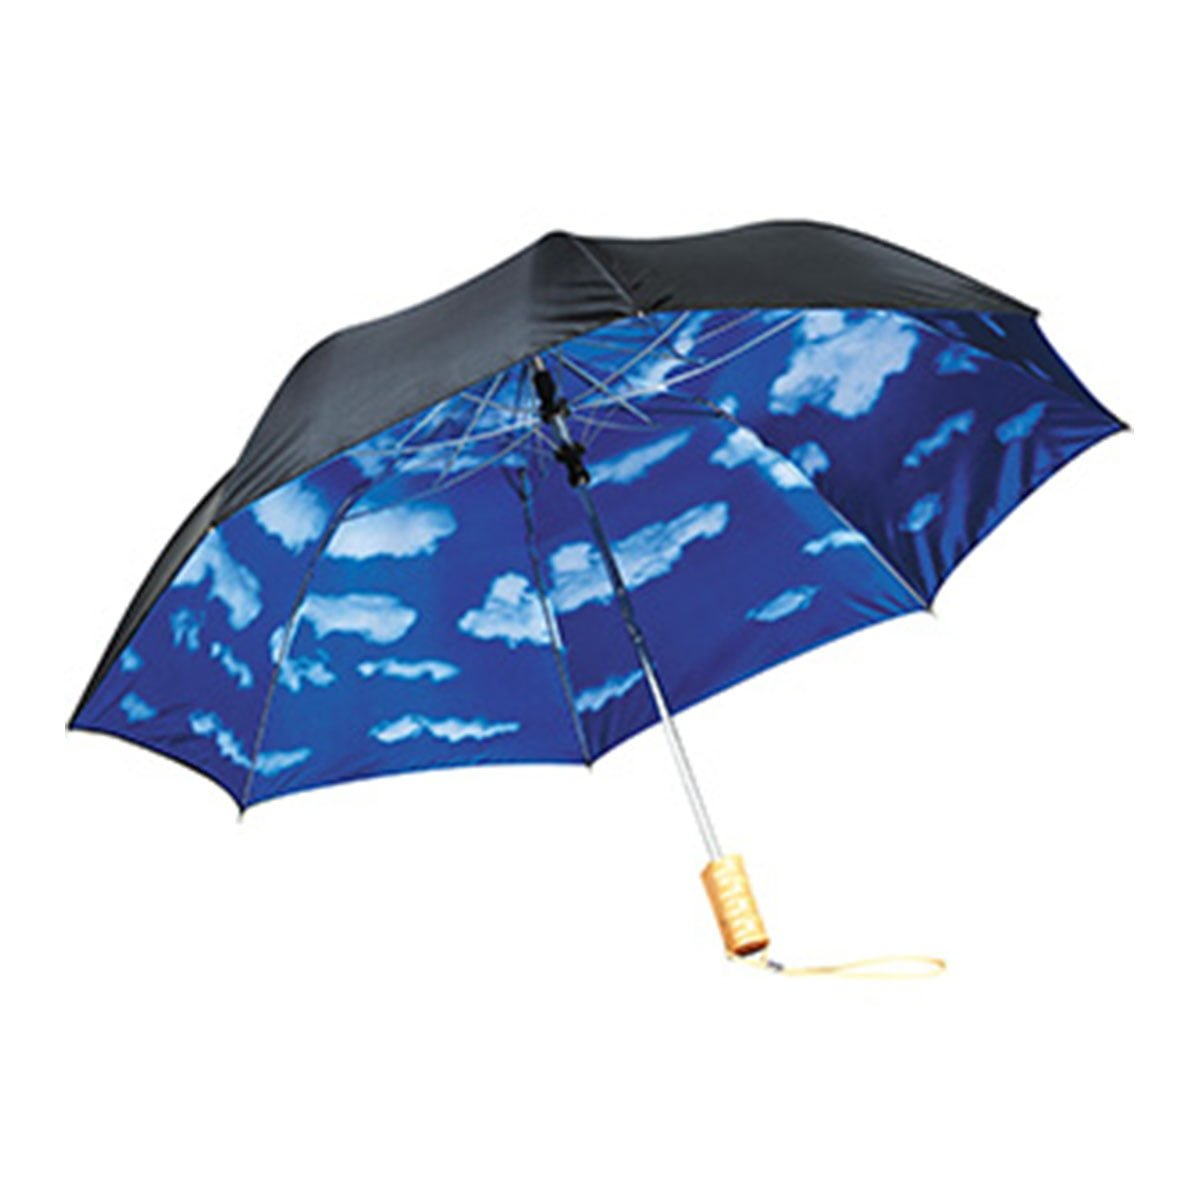 46″ Blue Skies Auto Open Folding Umbrella-Black